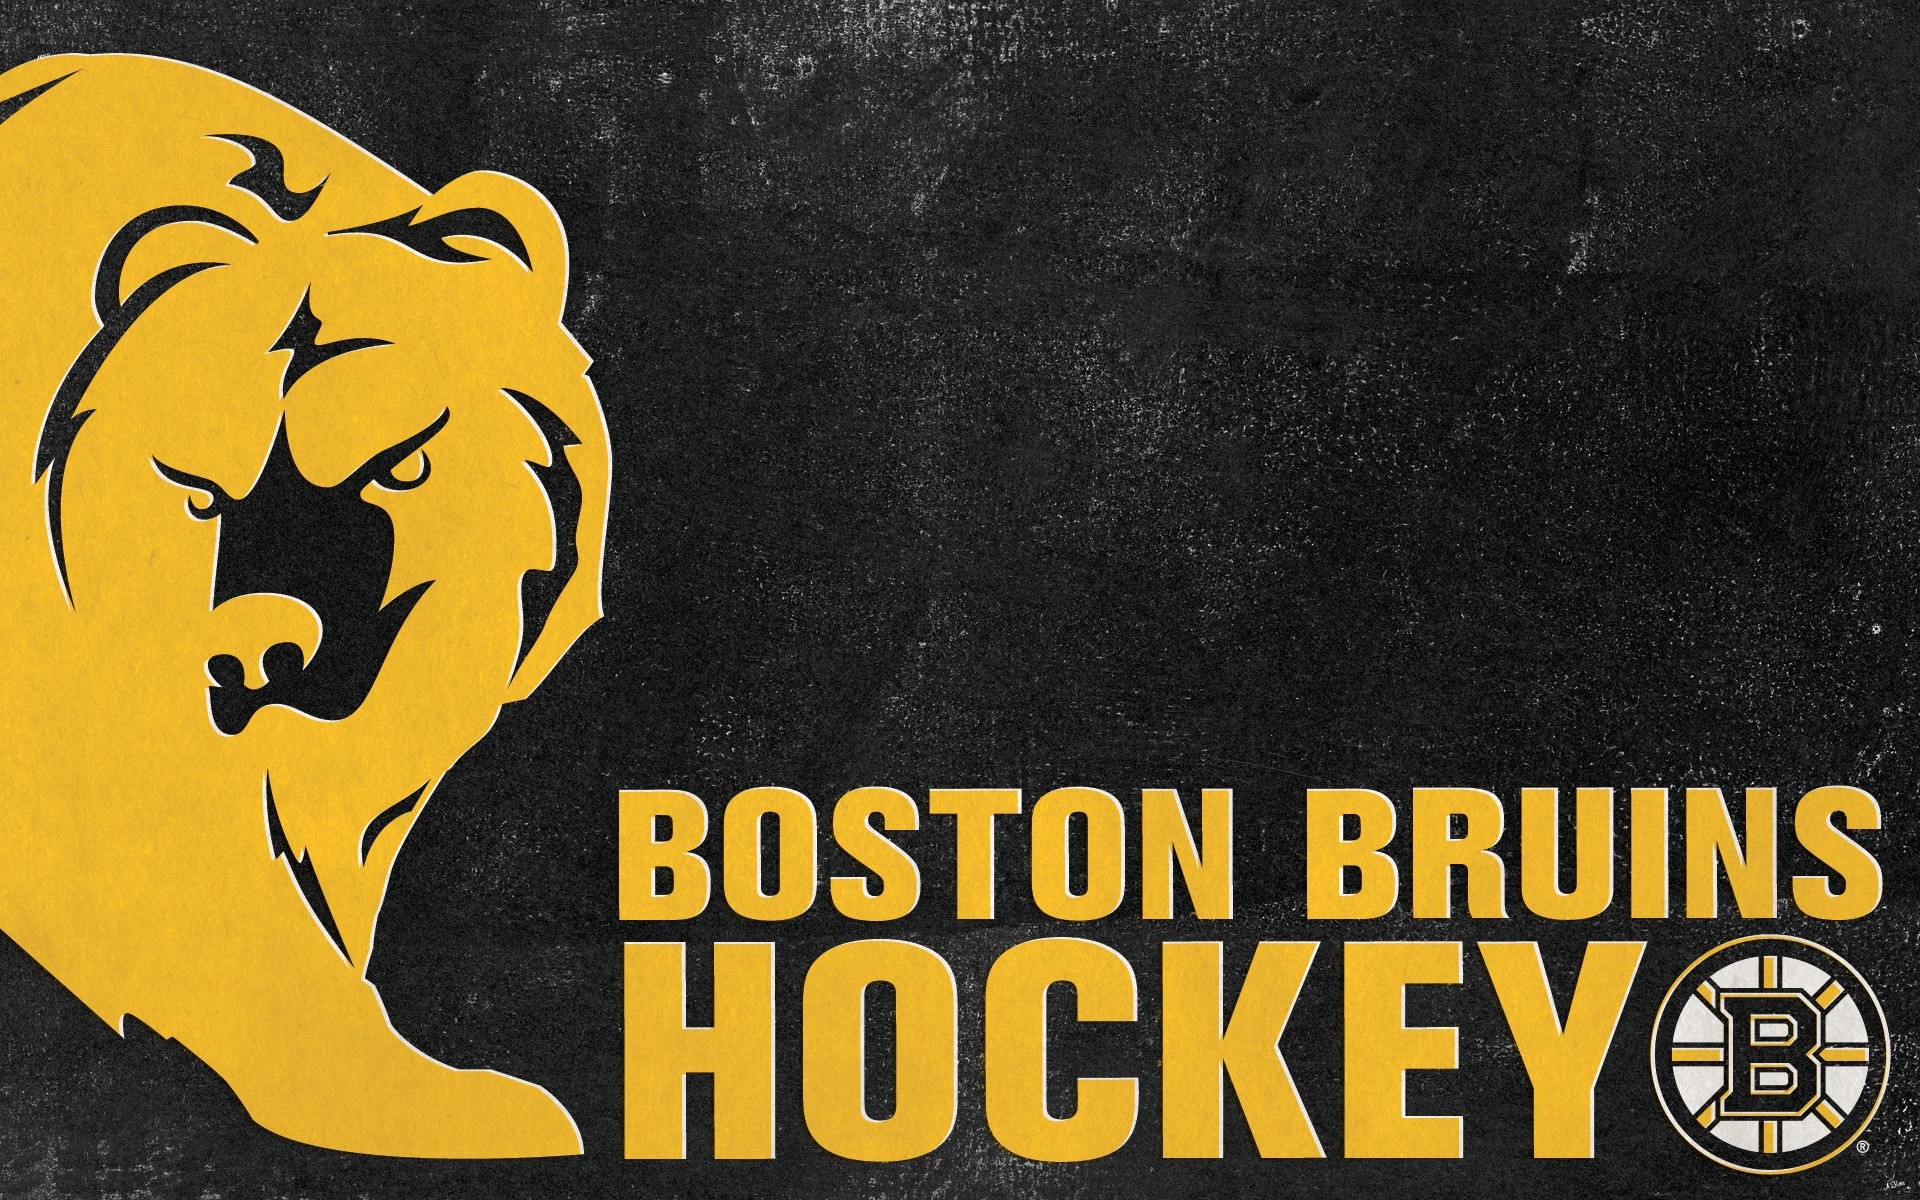 … boston bruins wallpapers images photos pictures backgrounds …